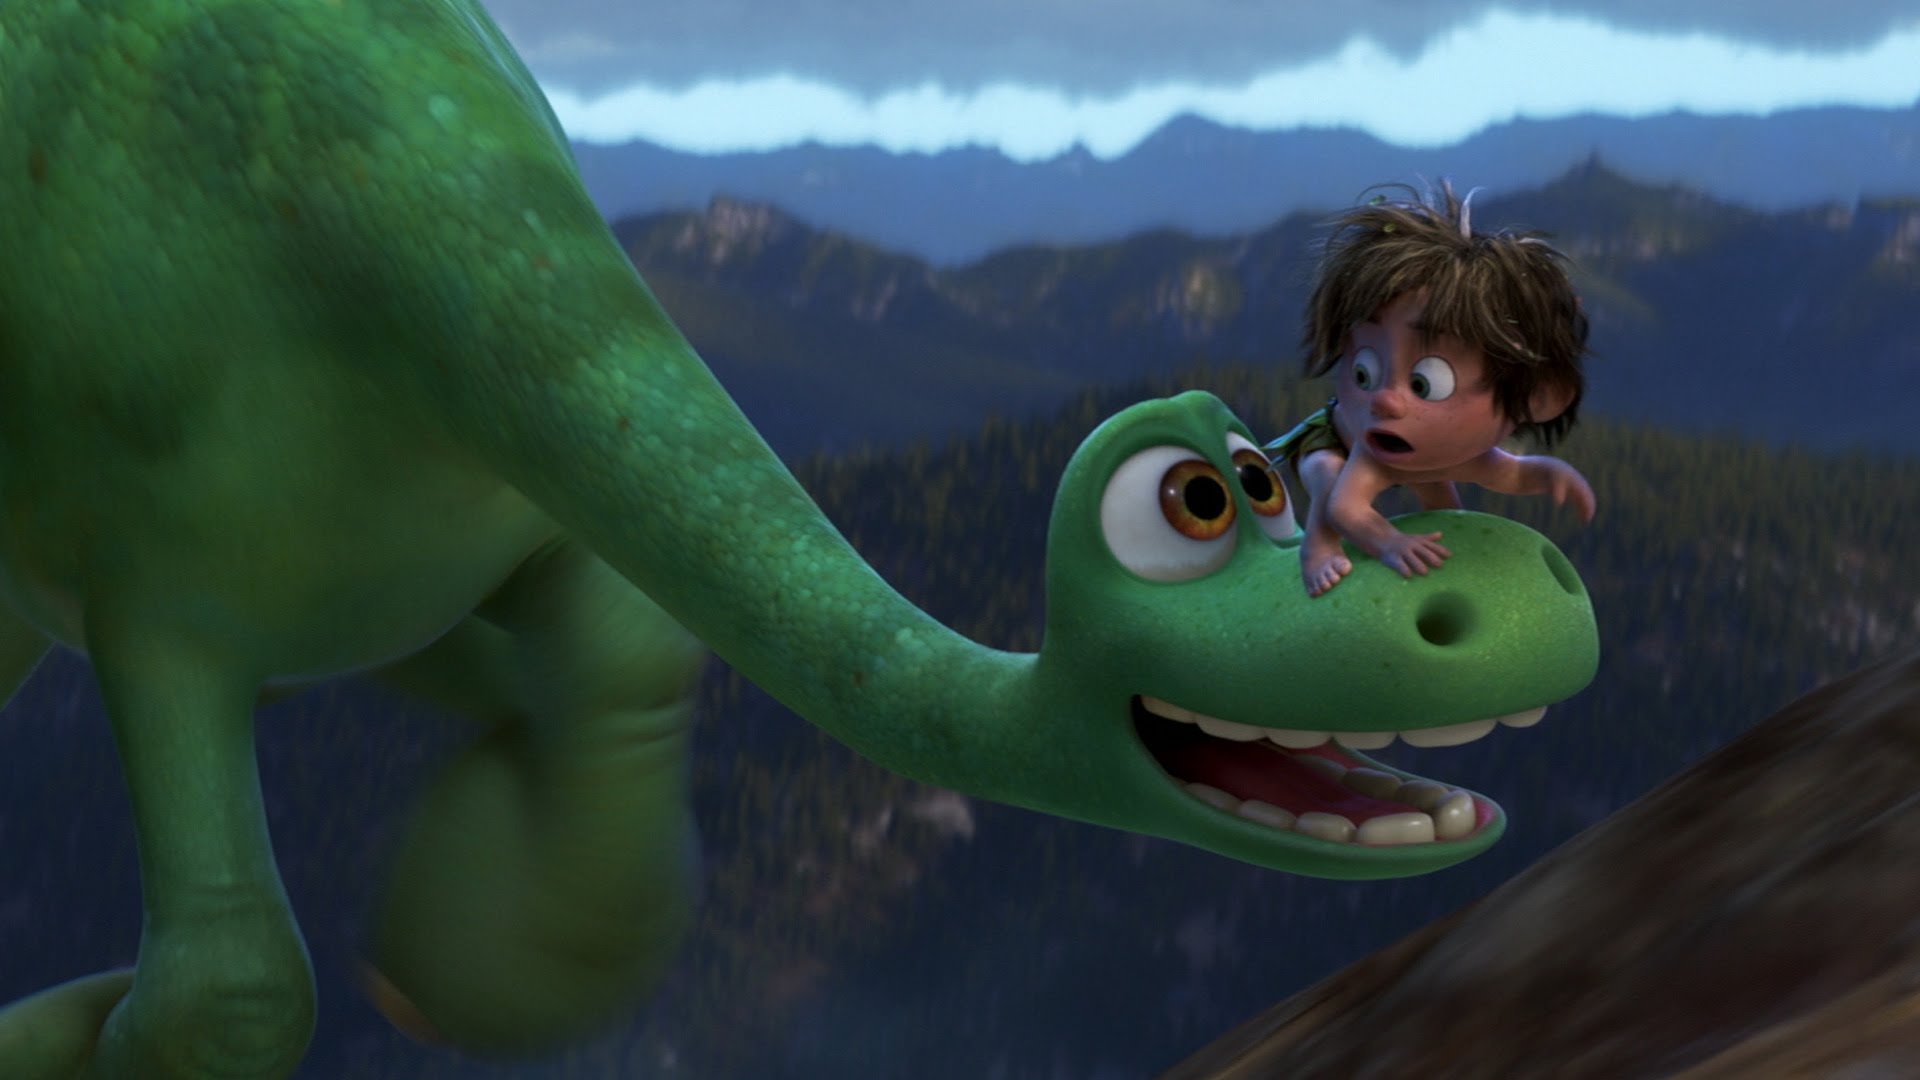 Triceratops The Good Dinosaur: Christianity Today